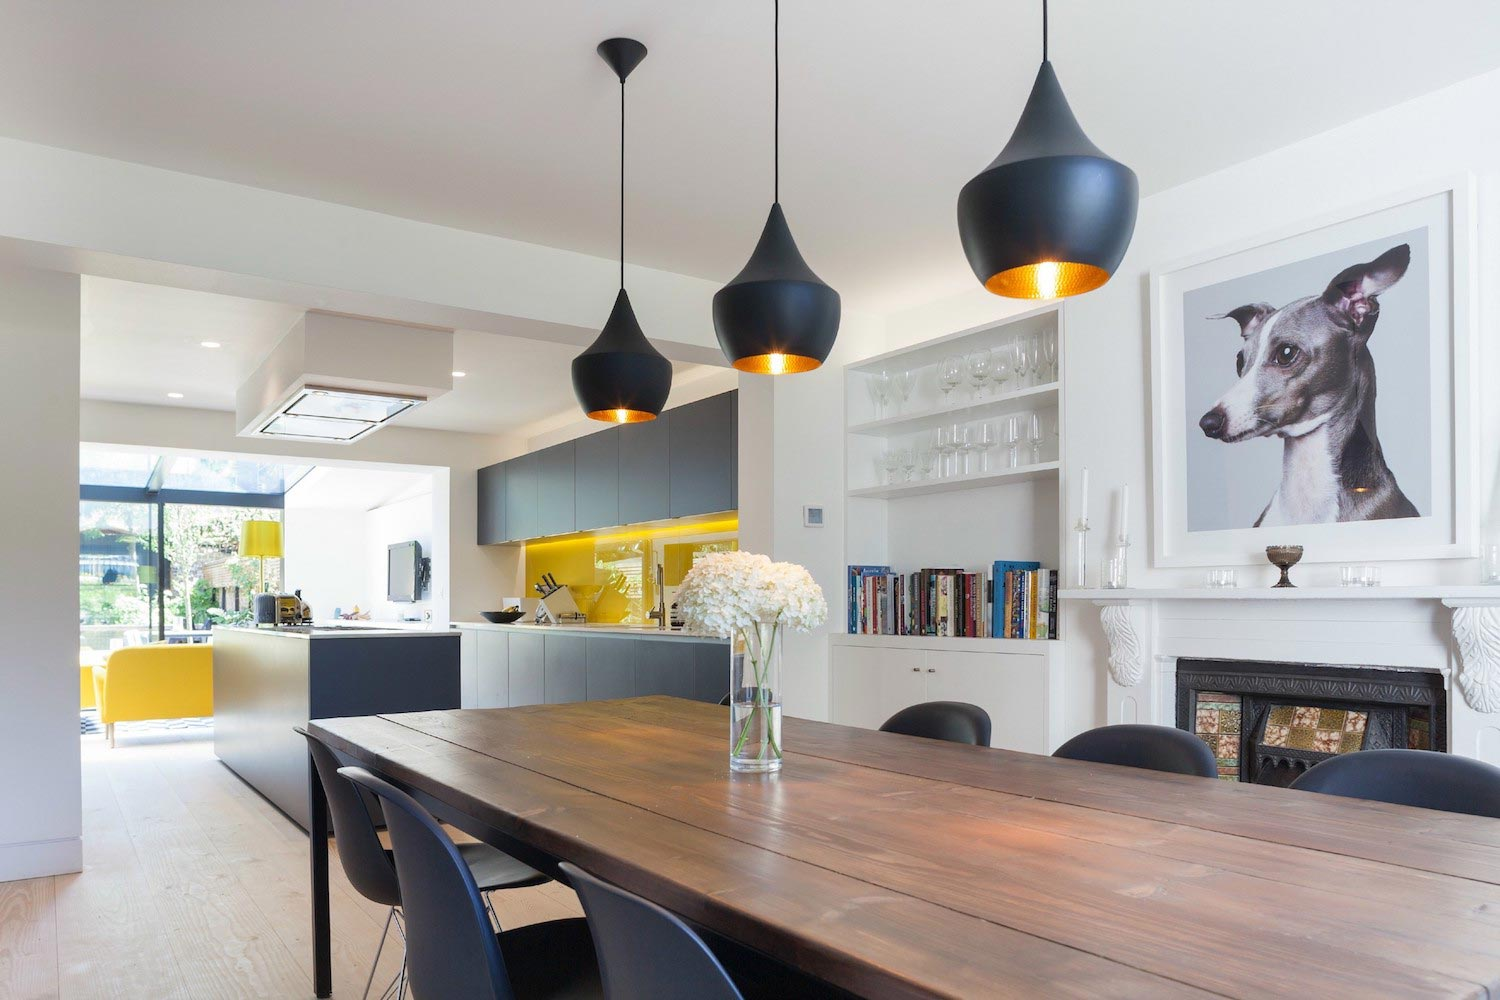 Dalston House A Minimal Family But Not Minimalist With Sleek Spaces That Still Have